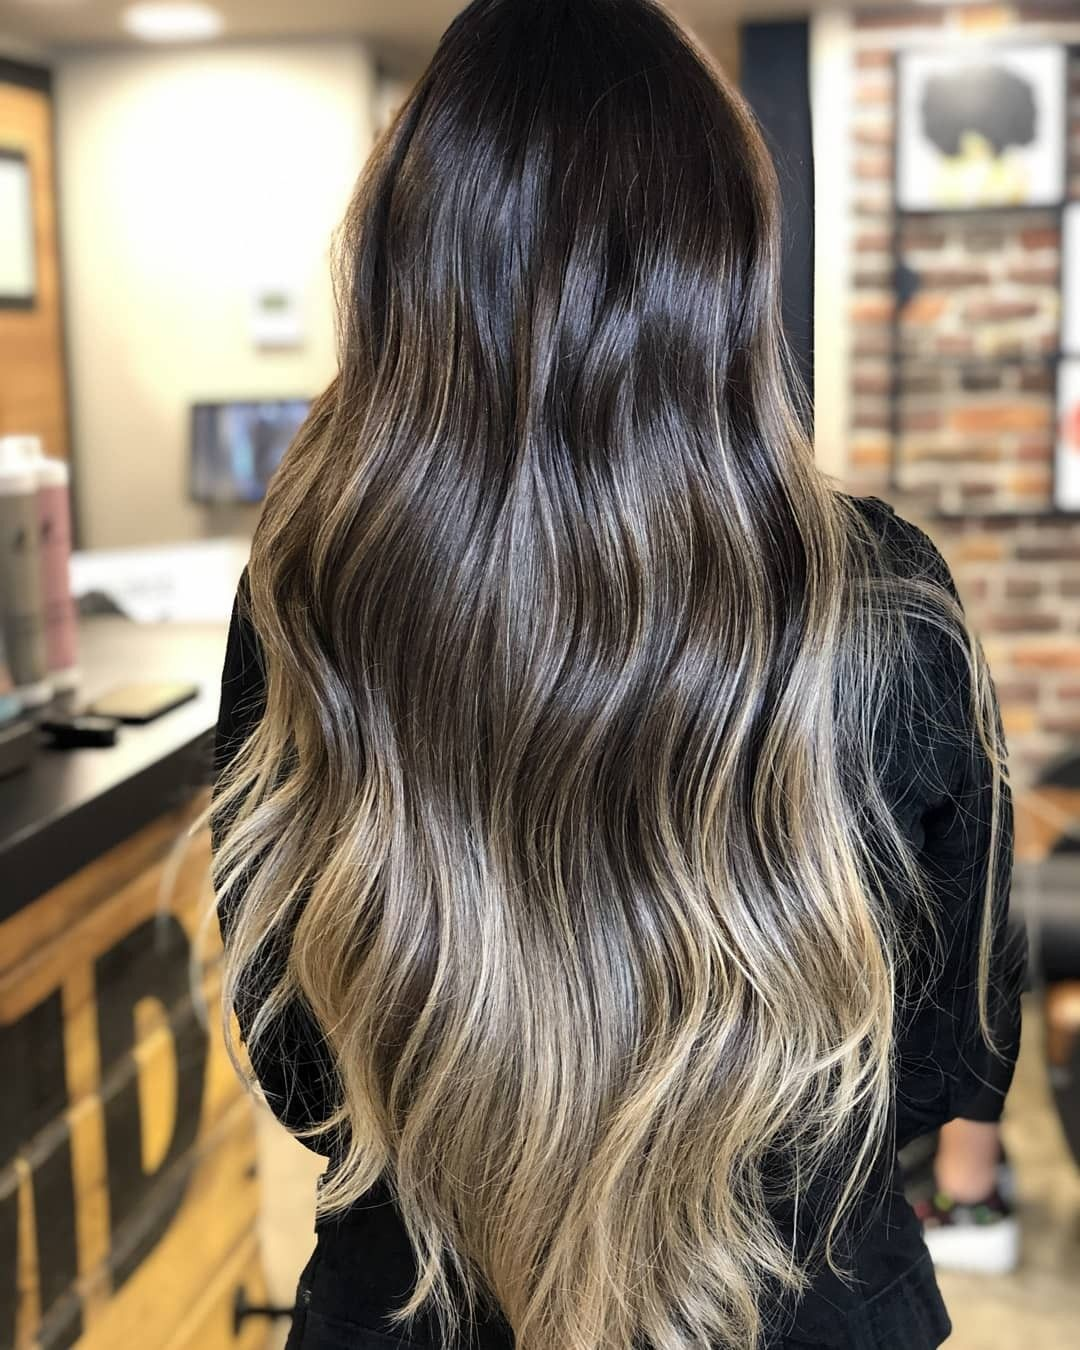 Ombre Hair Isilti Ombre Ombrehair Isiltilisaclar Naturelovers